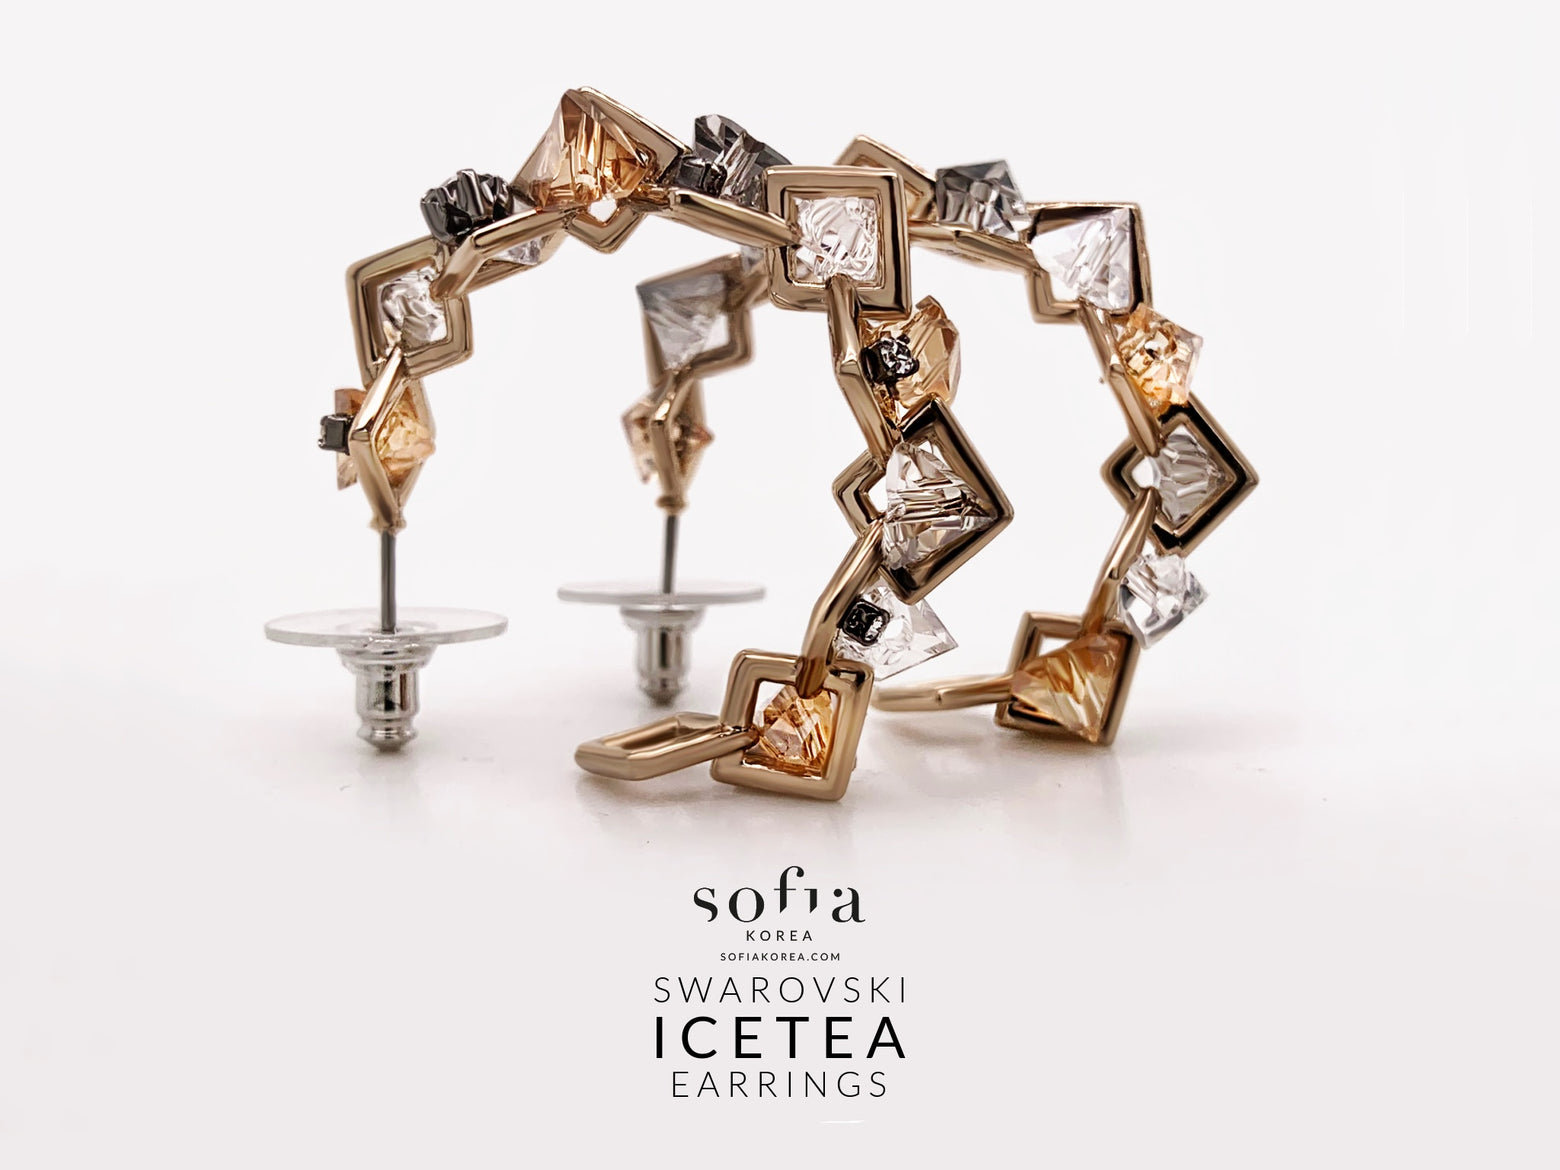 Ice Tea Earrings - Sofiakorea